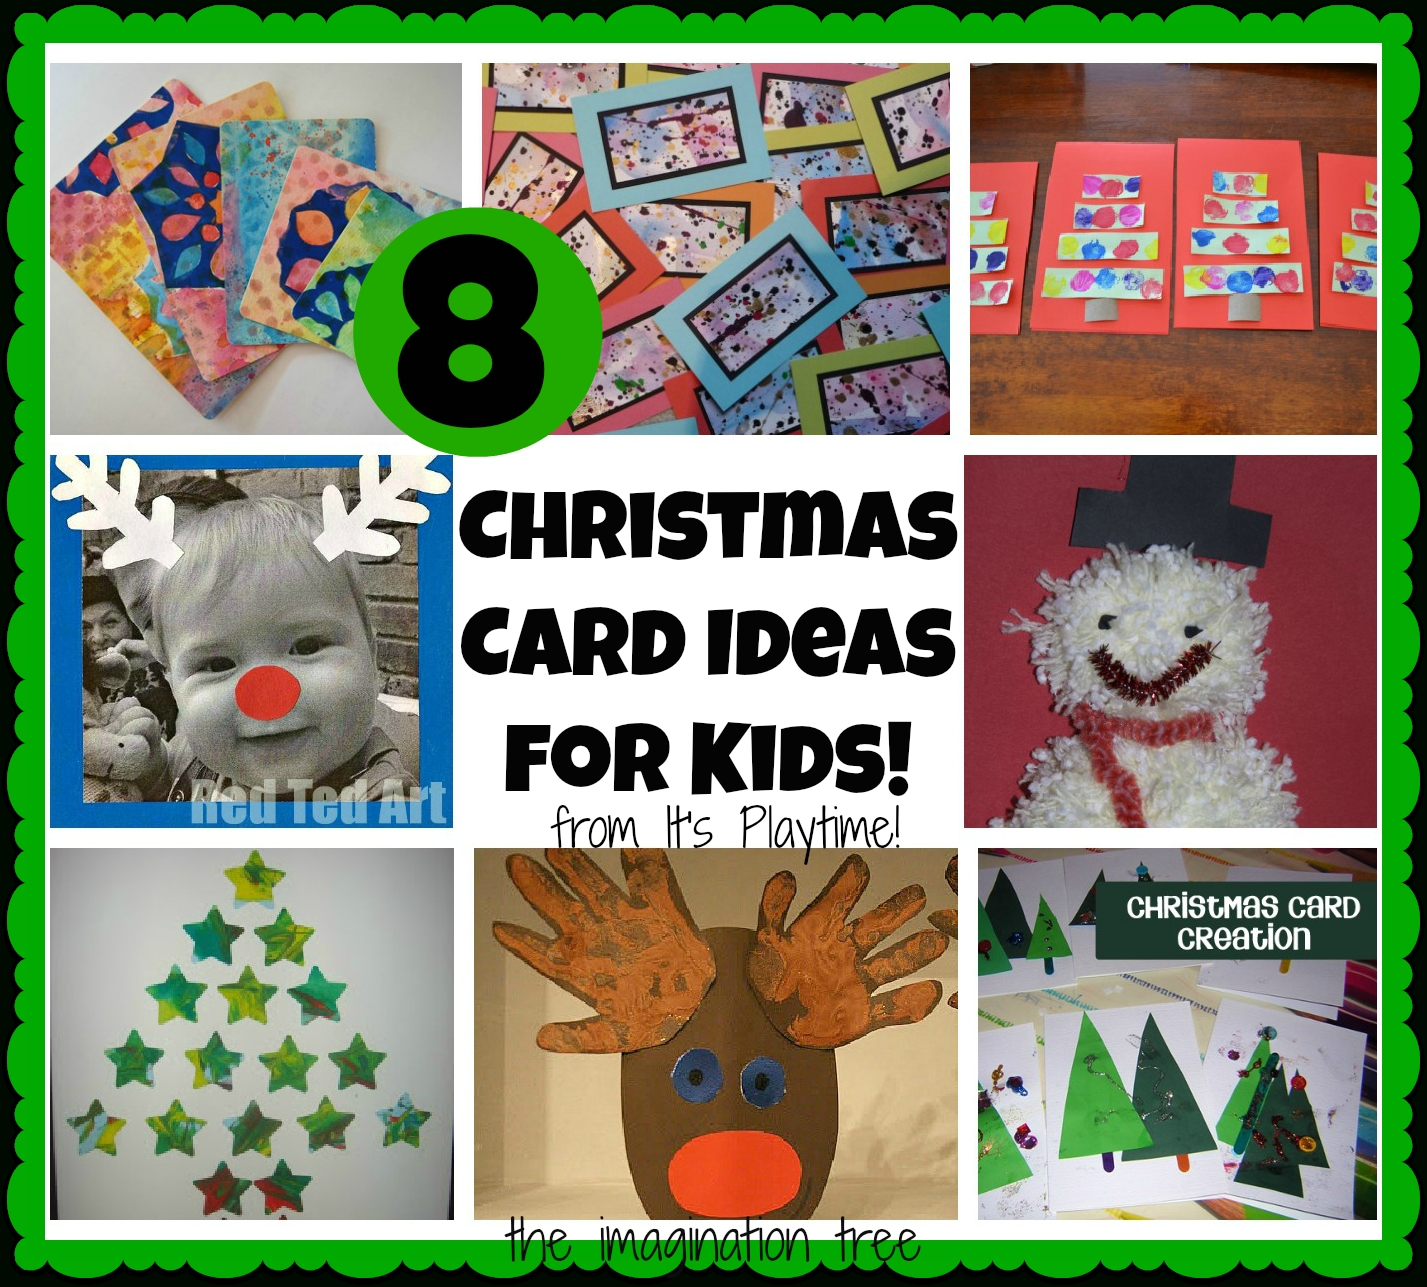 10 Most Popular Christmas Card Ideas With Kids 8 christmas cards kids can make its playtime the imagination tree 1 2020